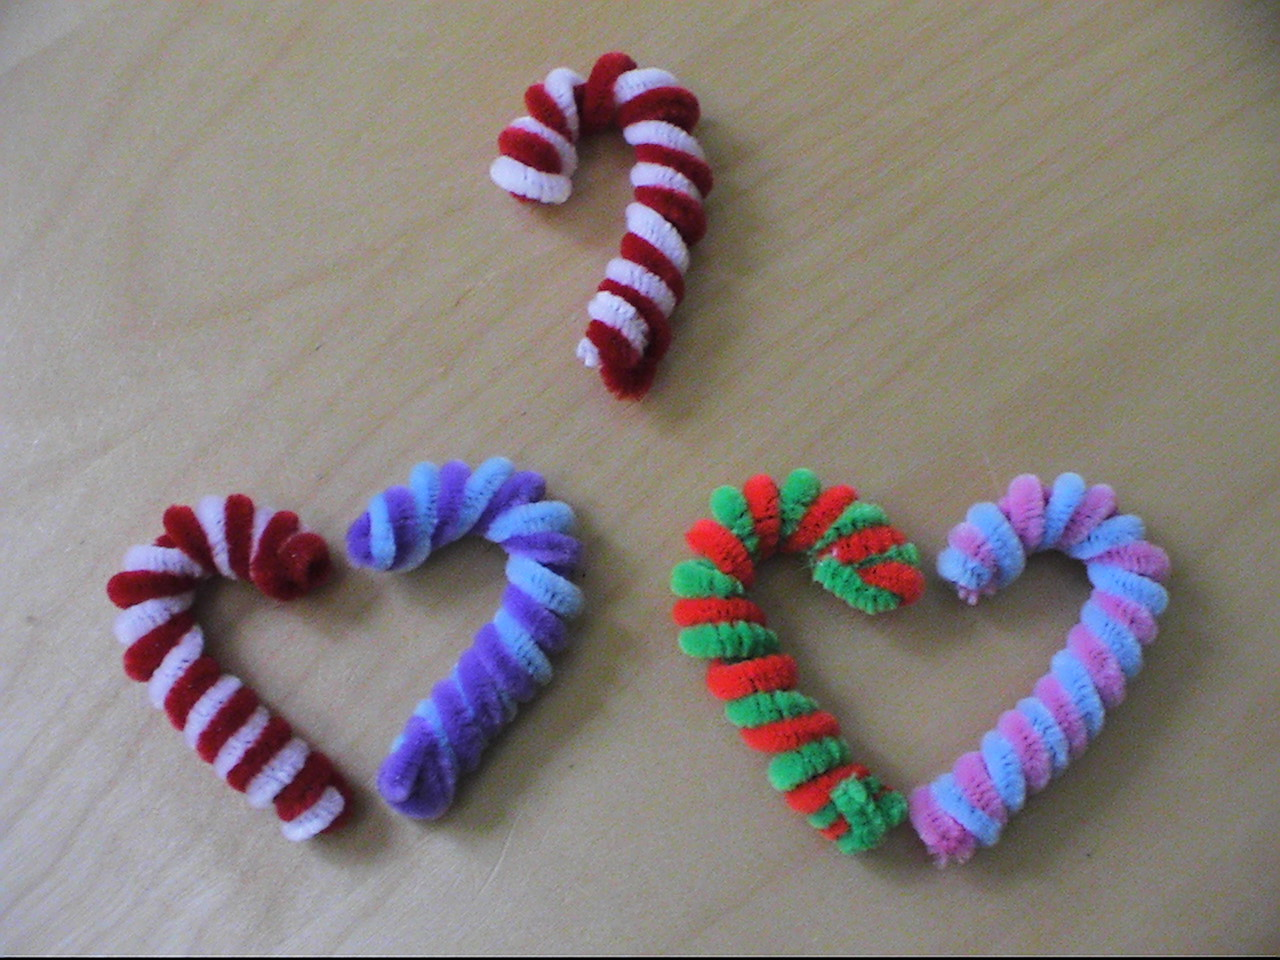 New Leaf Crafts - Pipe cleaner Candy Canes: newleafcrafts.blogspot.com/2011/02/pipe-cleaner-candy-canes.html